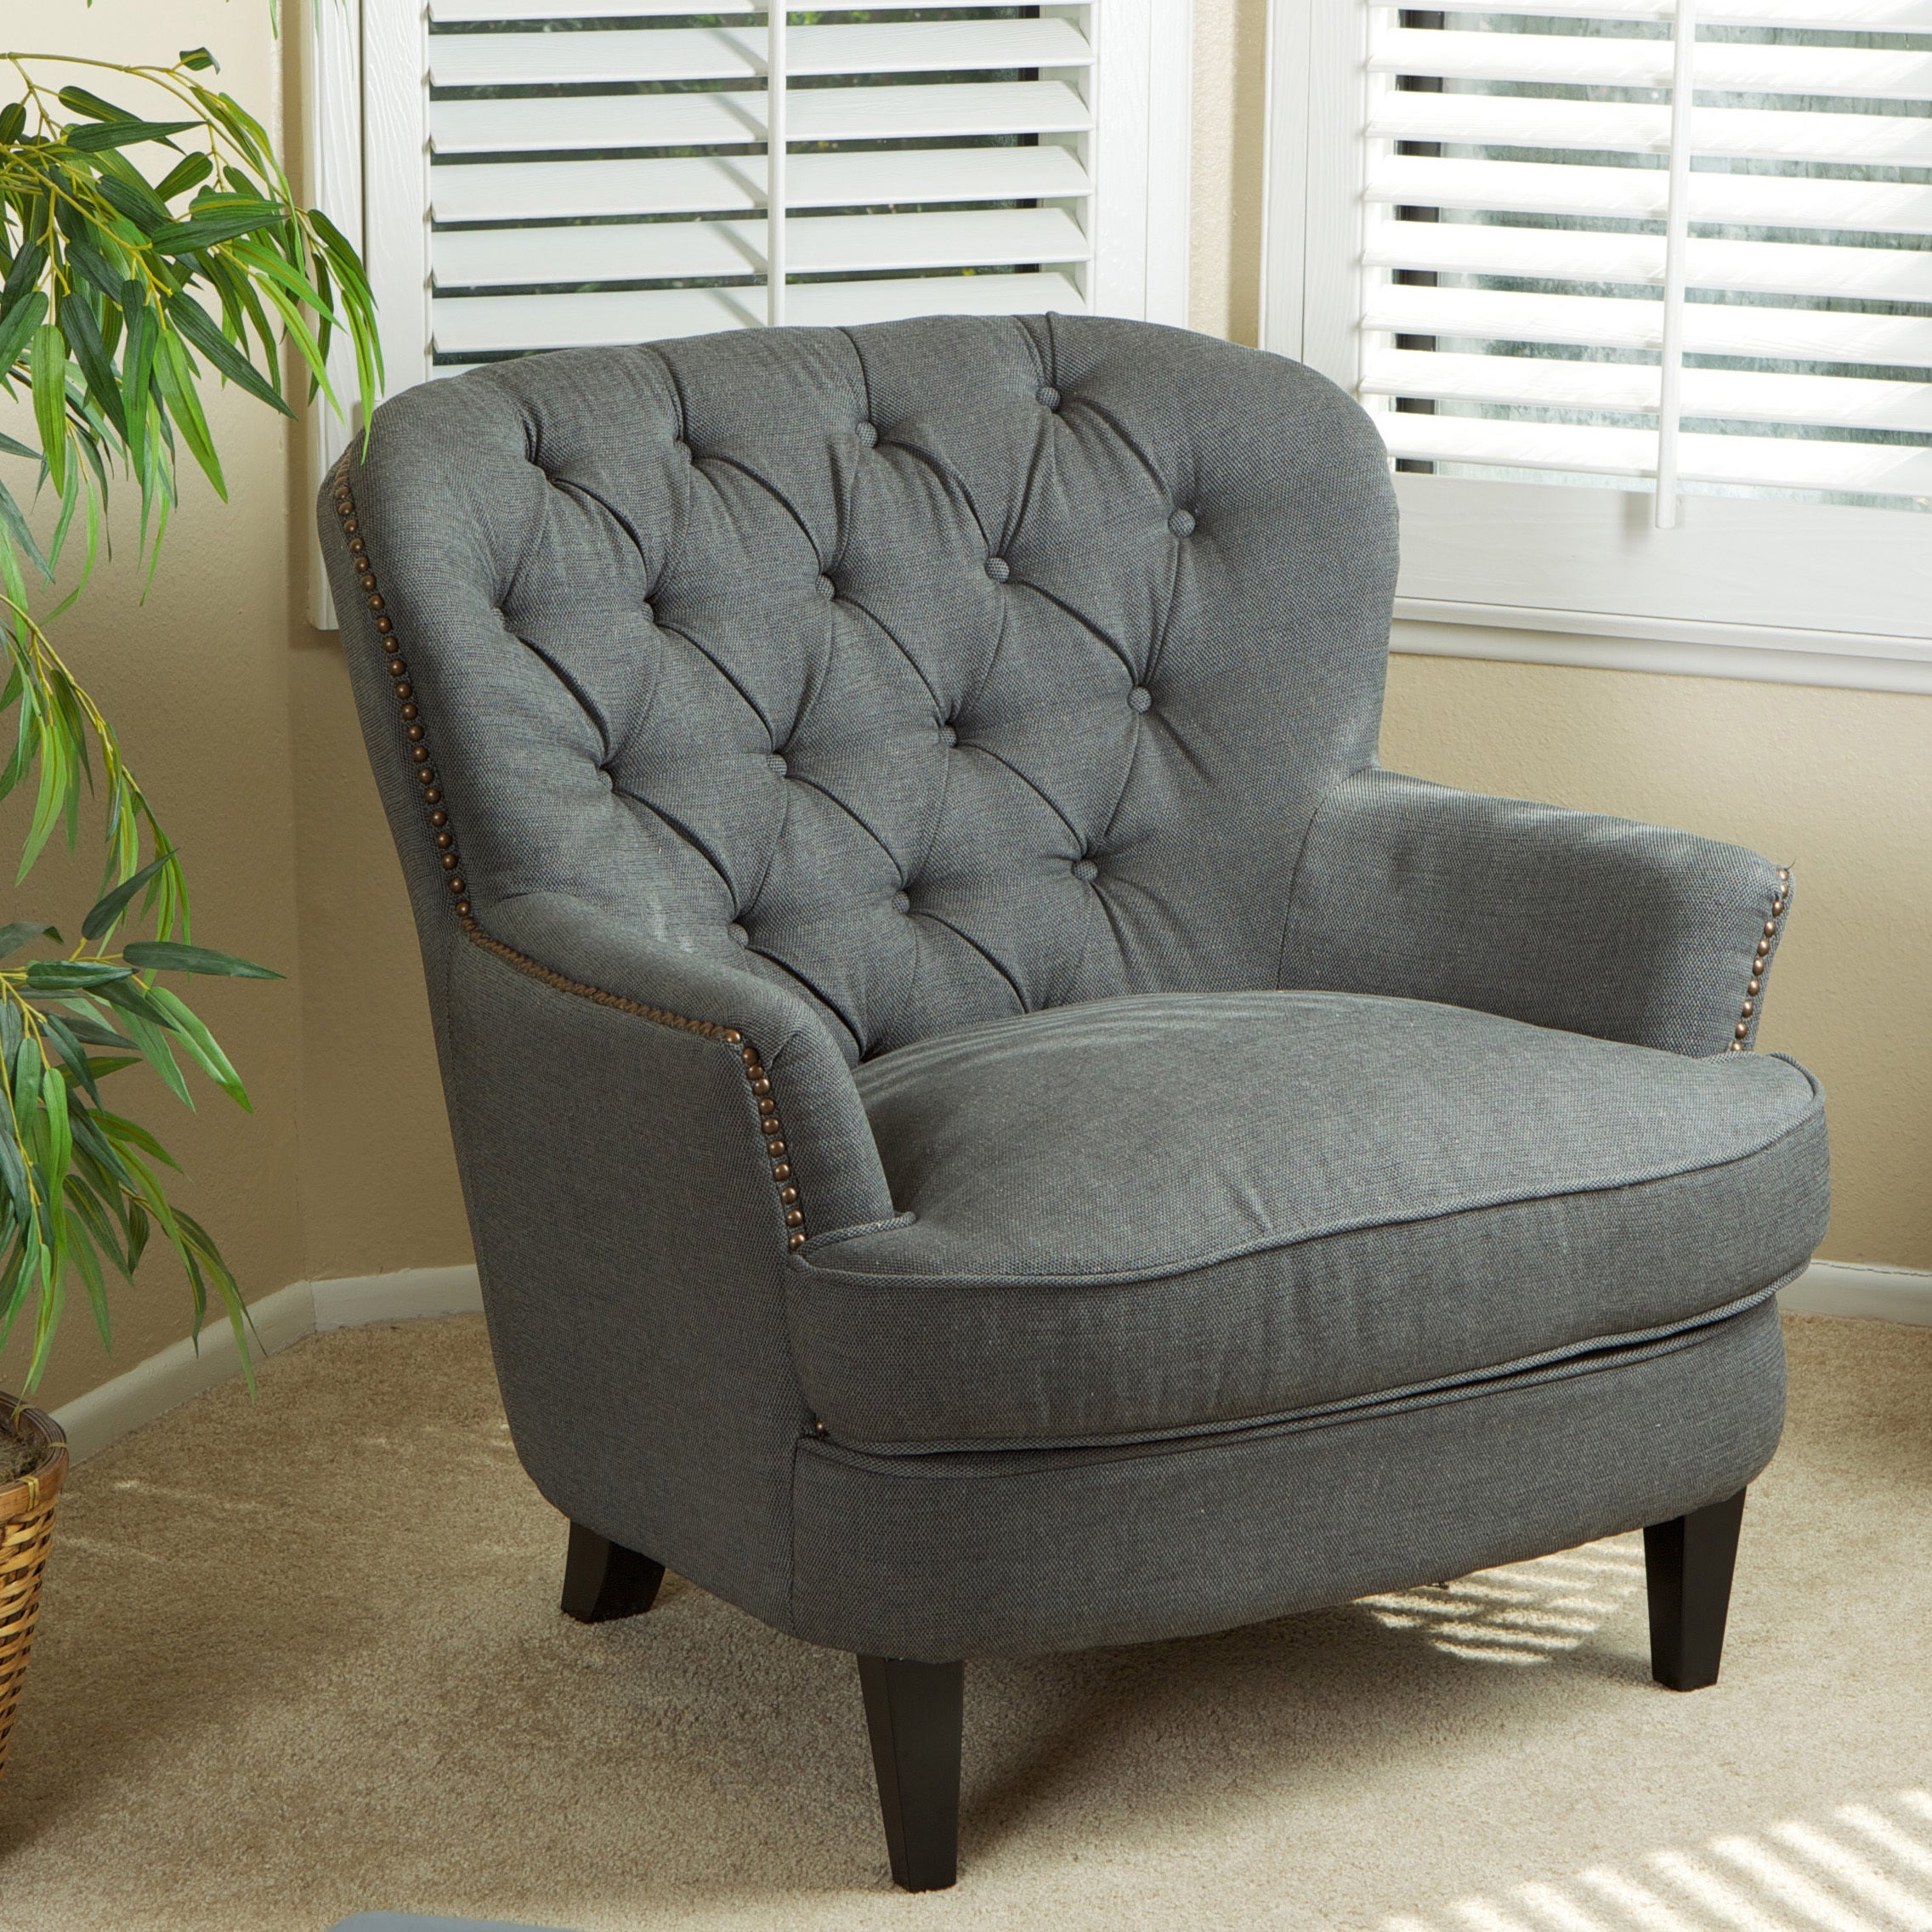 Etonnant Shop Tafton Tufted Oversized Fabric Club Chair By Christopher Knight Home    On Sale   Free Shipping Today   Overstock.com   6201477